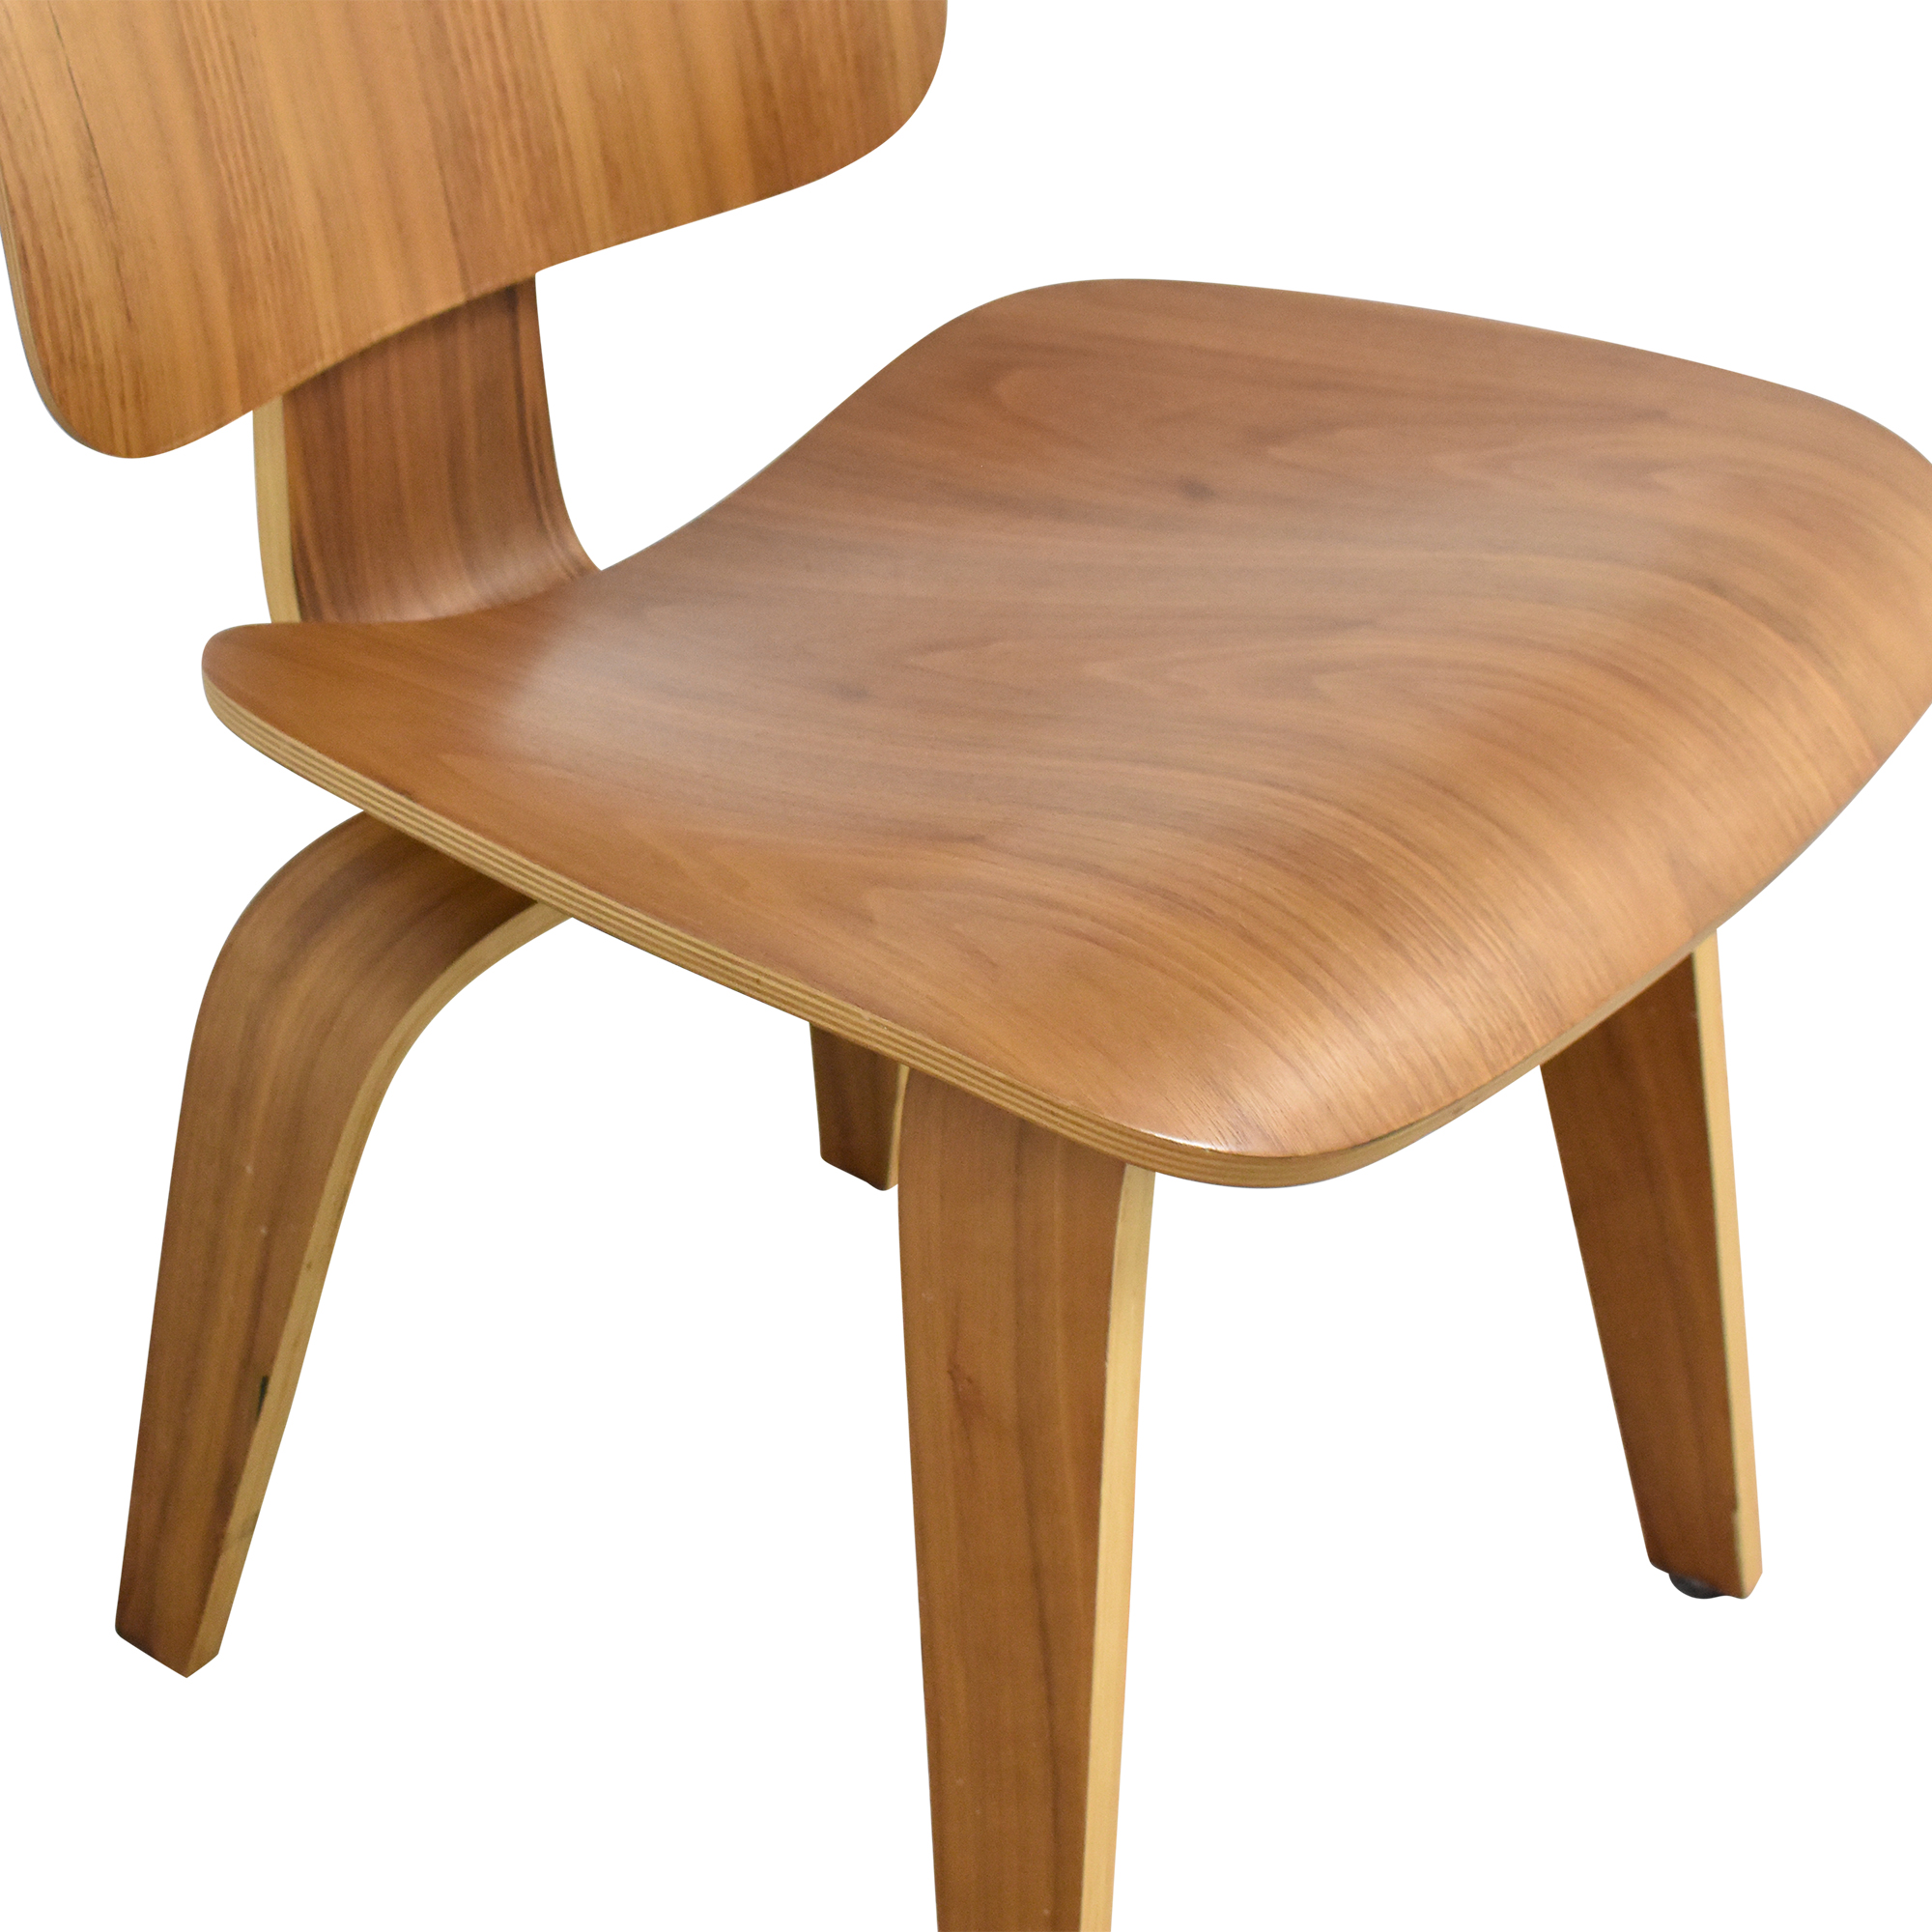 Modern Eames-Style Side Chair on sale